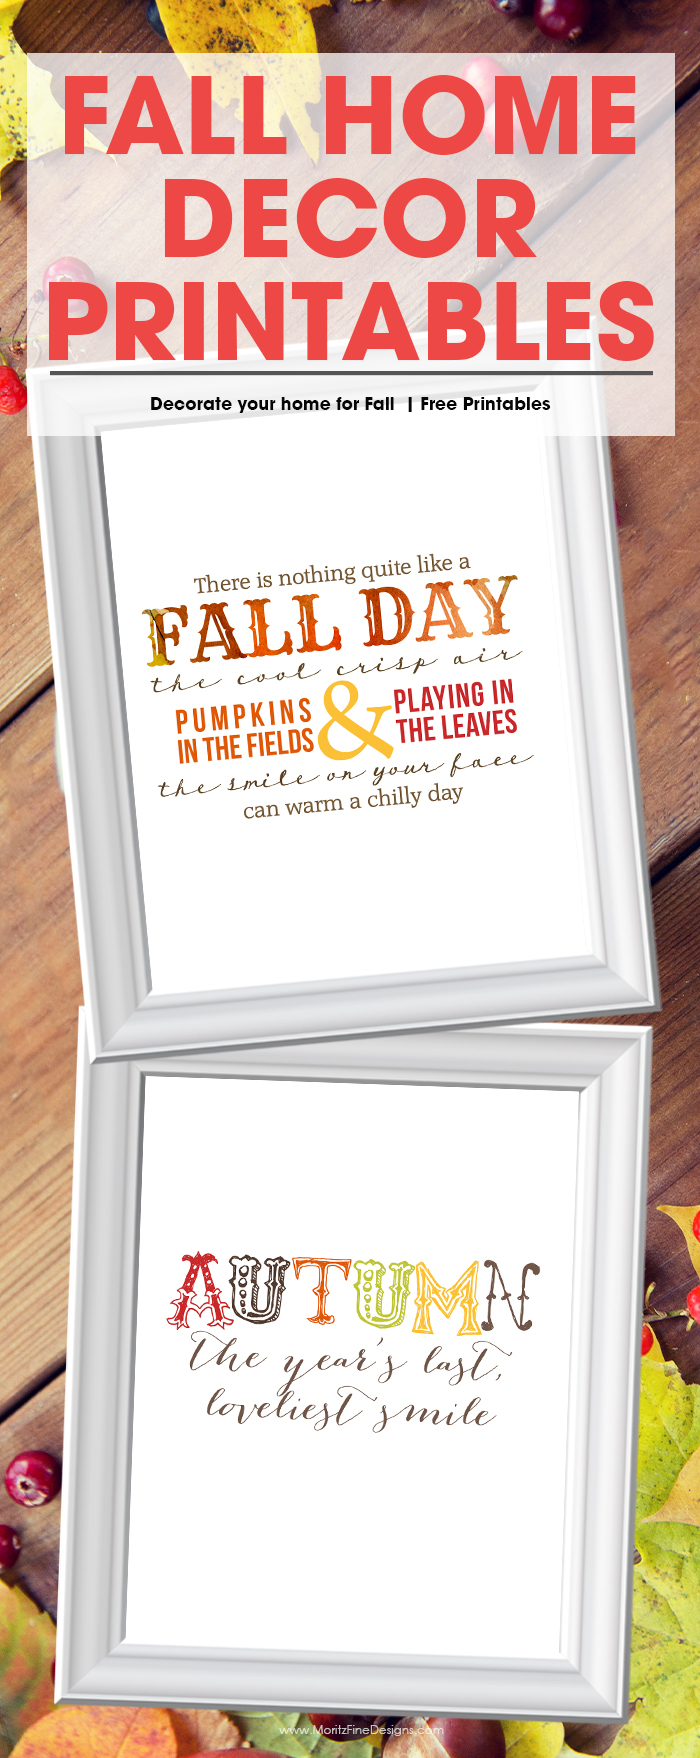 Update your home for fall with these free Fall Home Decor Printables. This is an easy and inexpensive way to add seasonal decorations to your home.